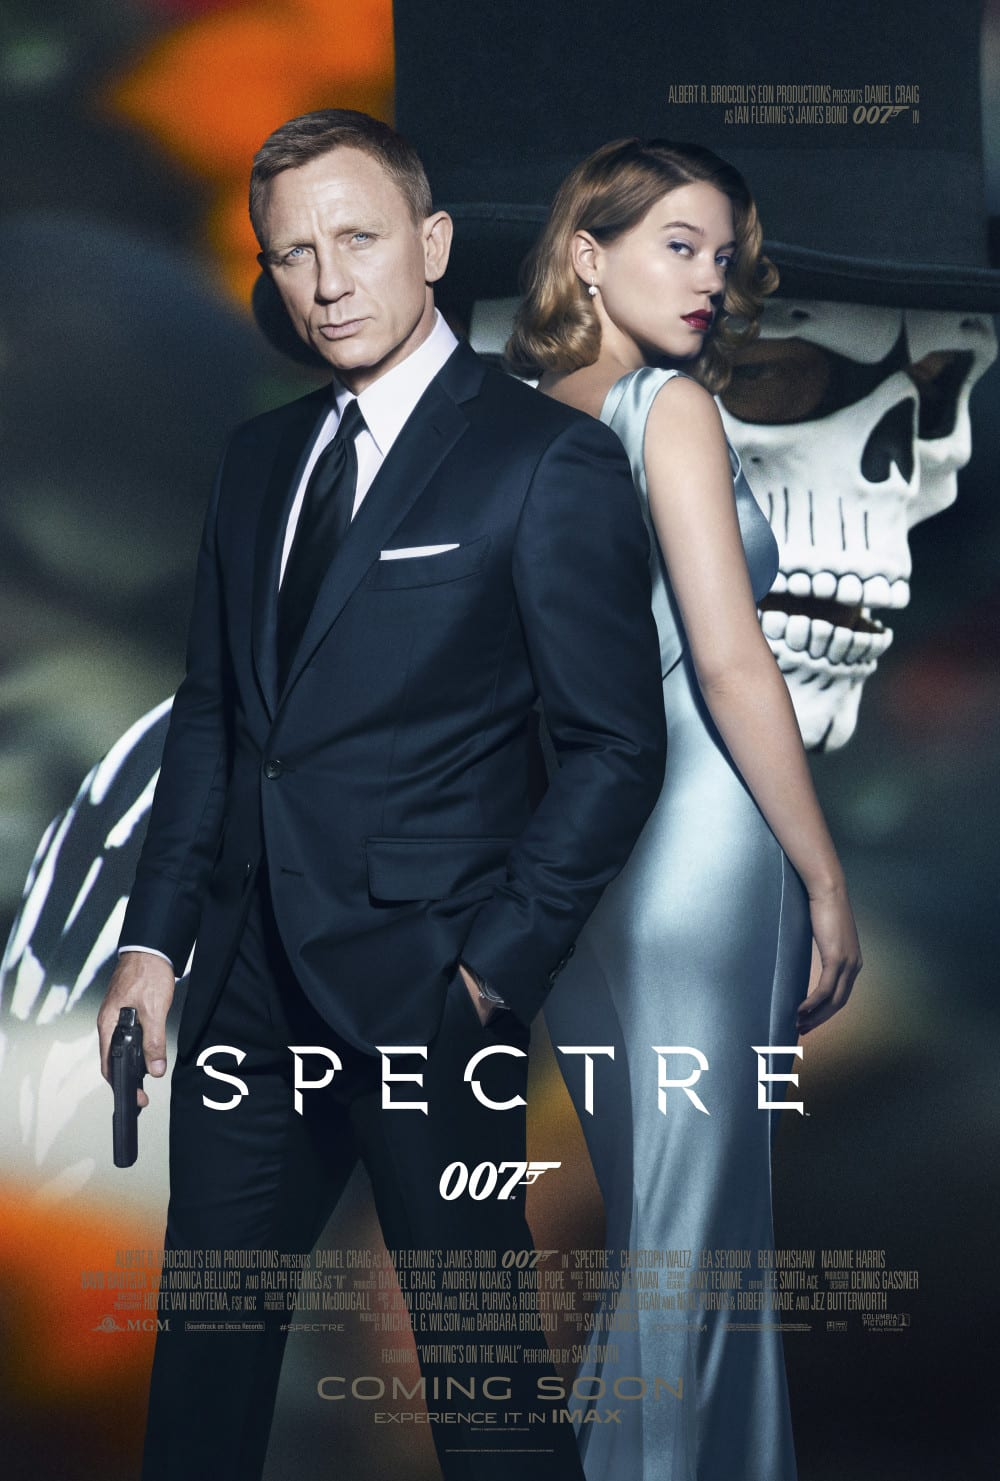 007 spectre poster-min